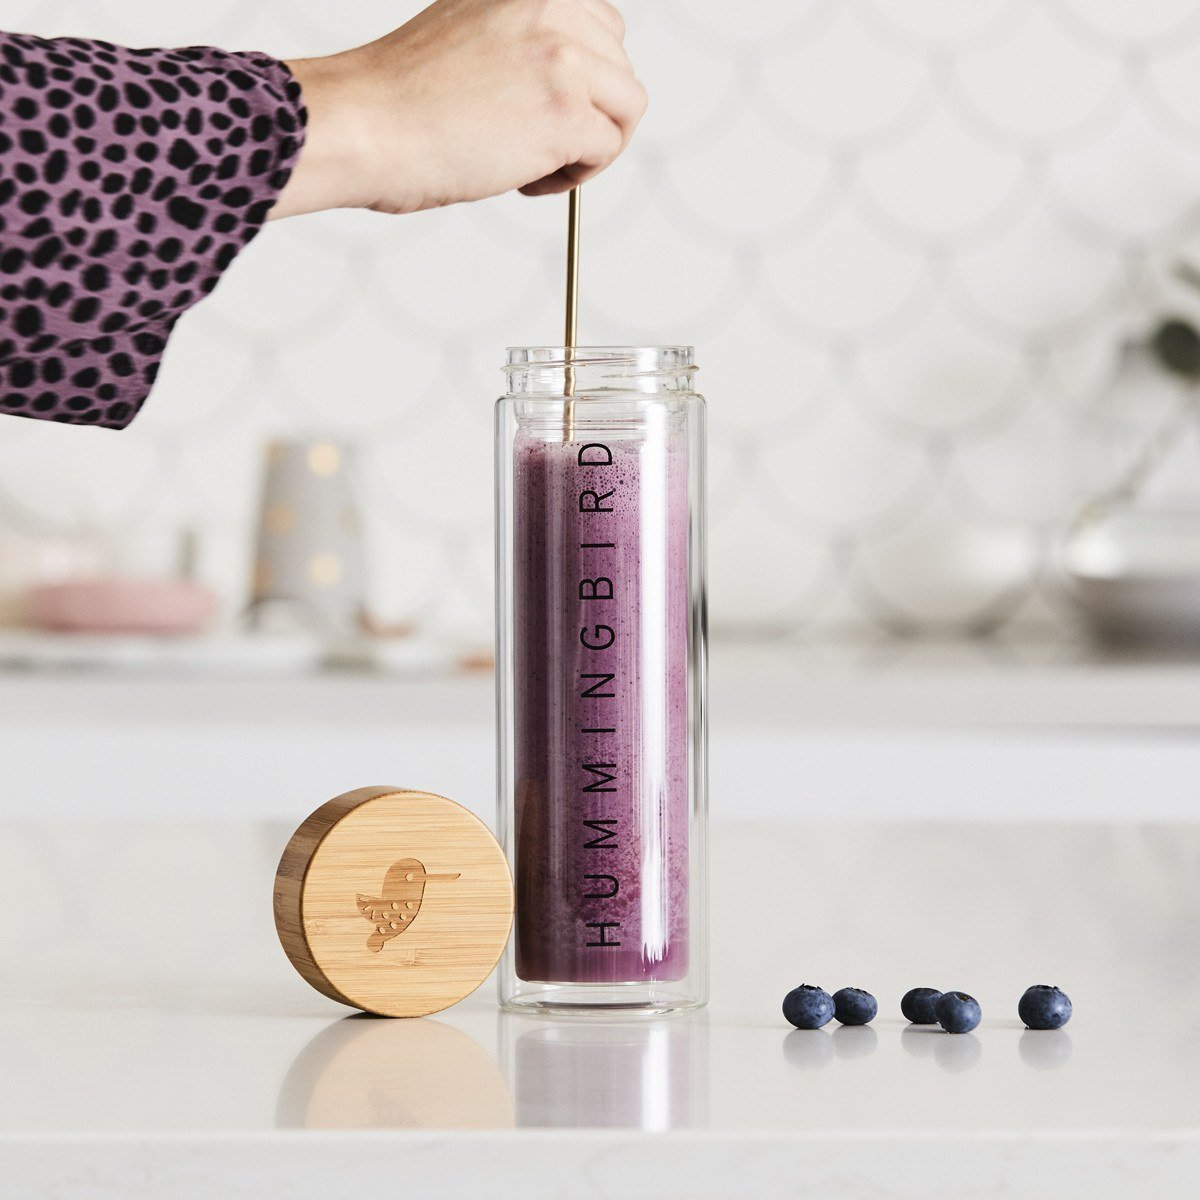 Smoothie 2Go Bottle